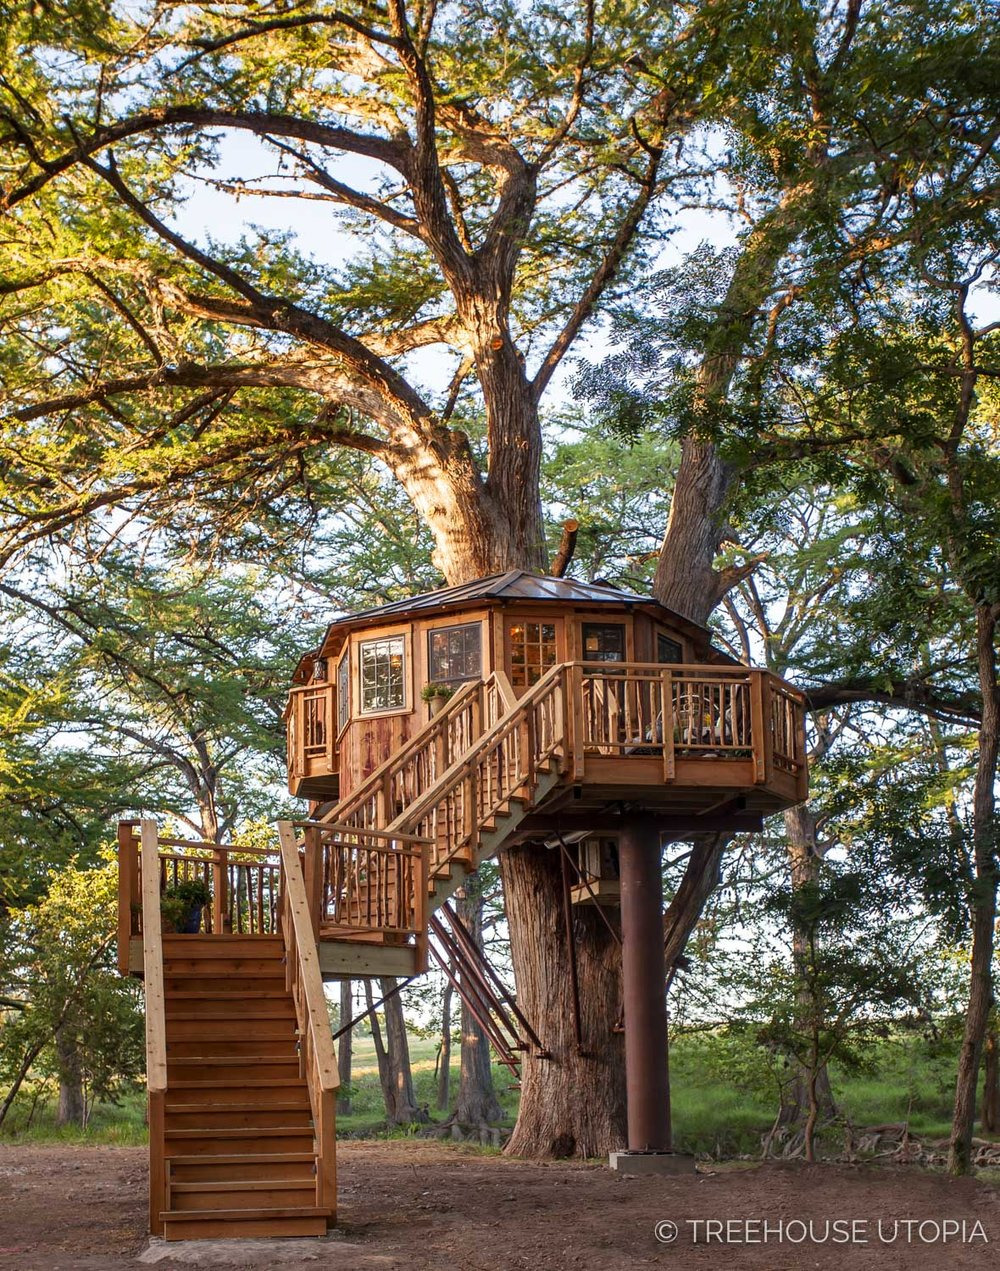 Carousel Treehouse Utopia 2018 444